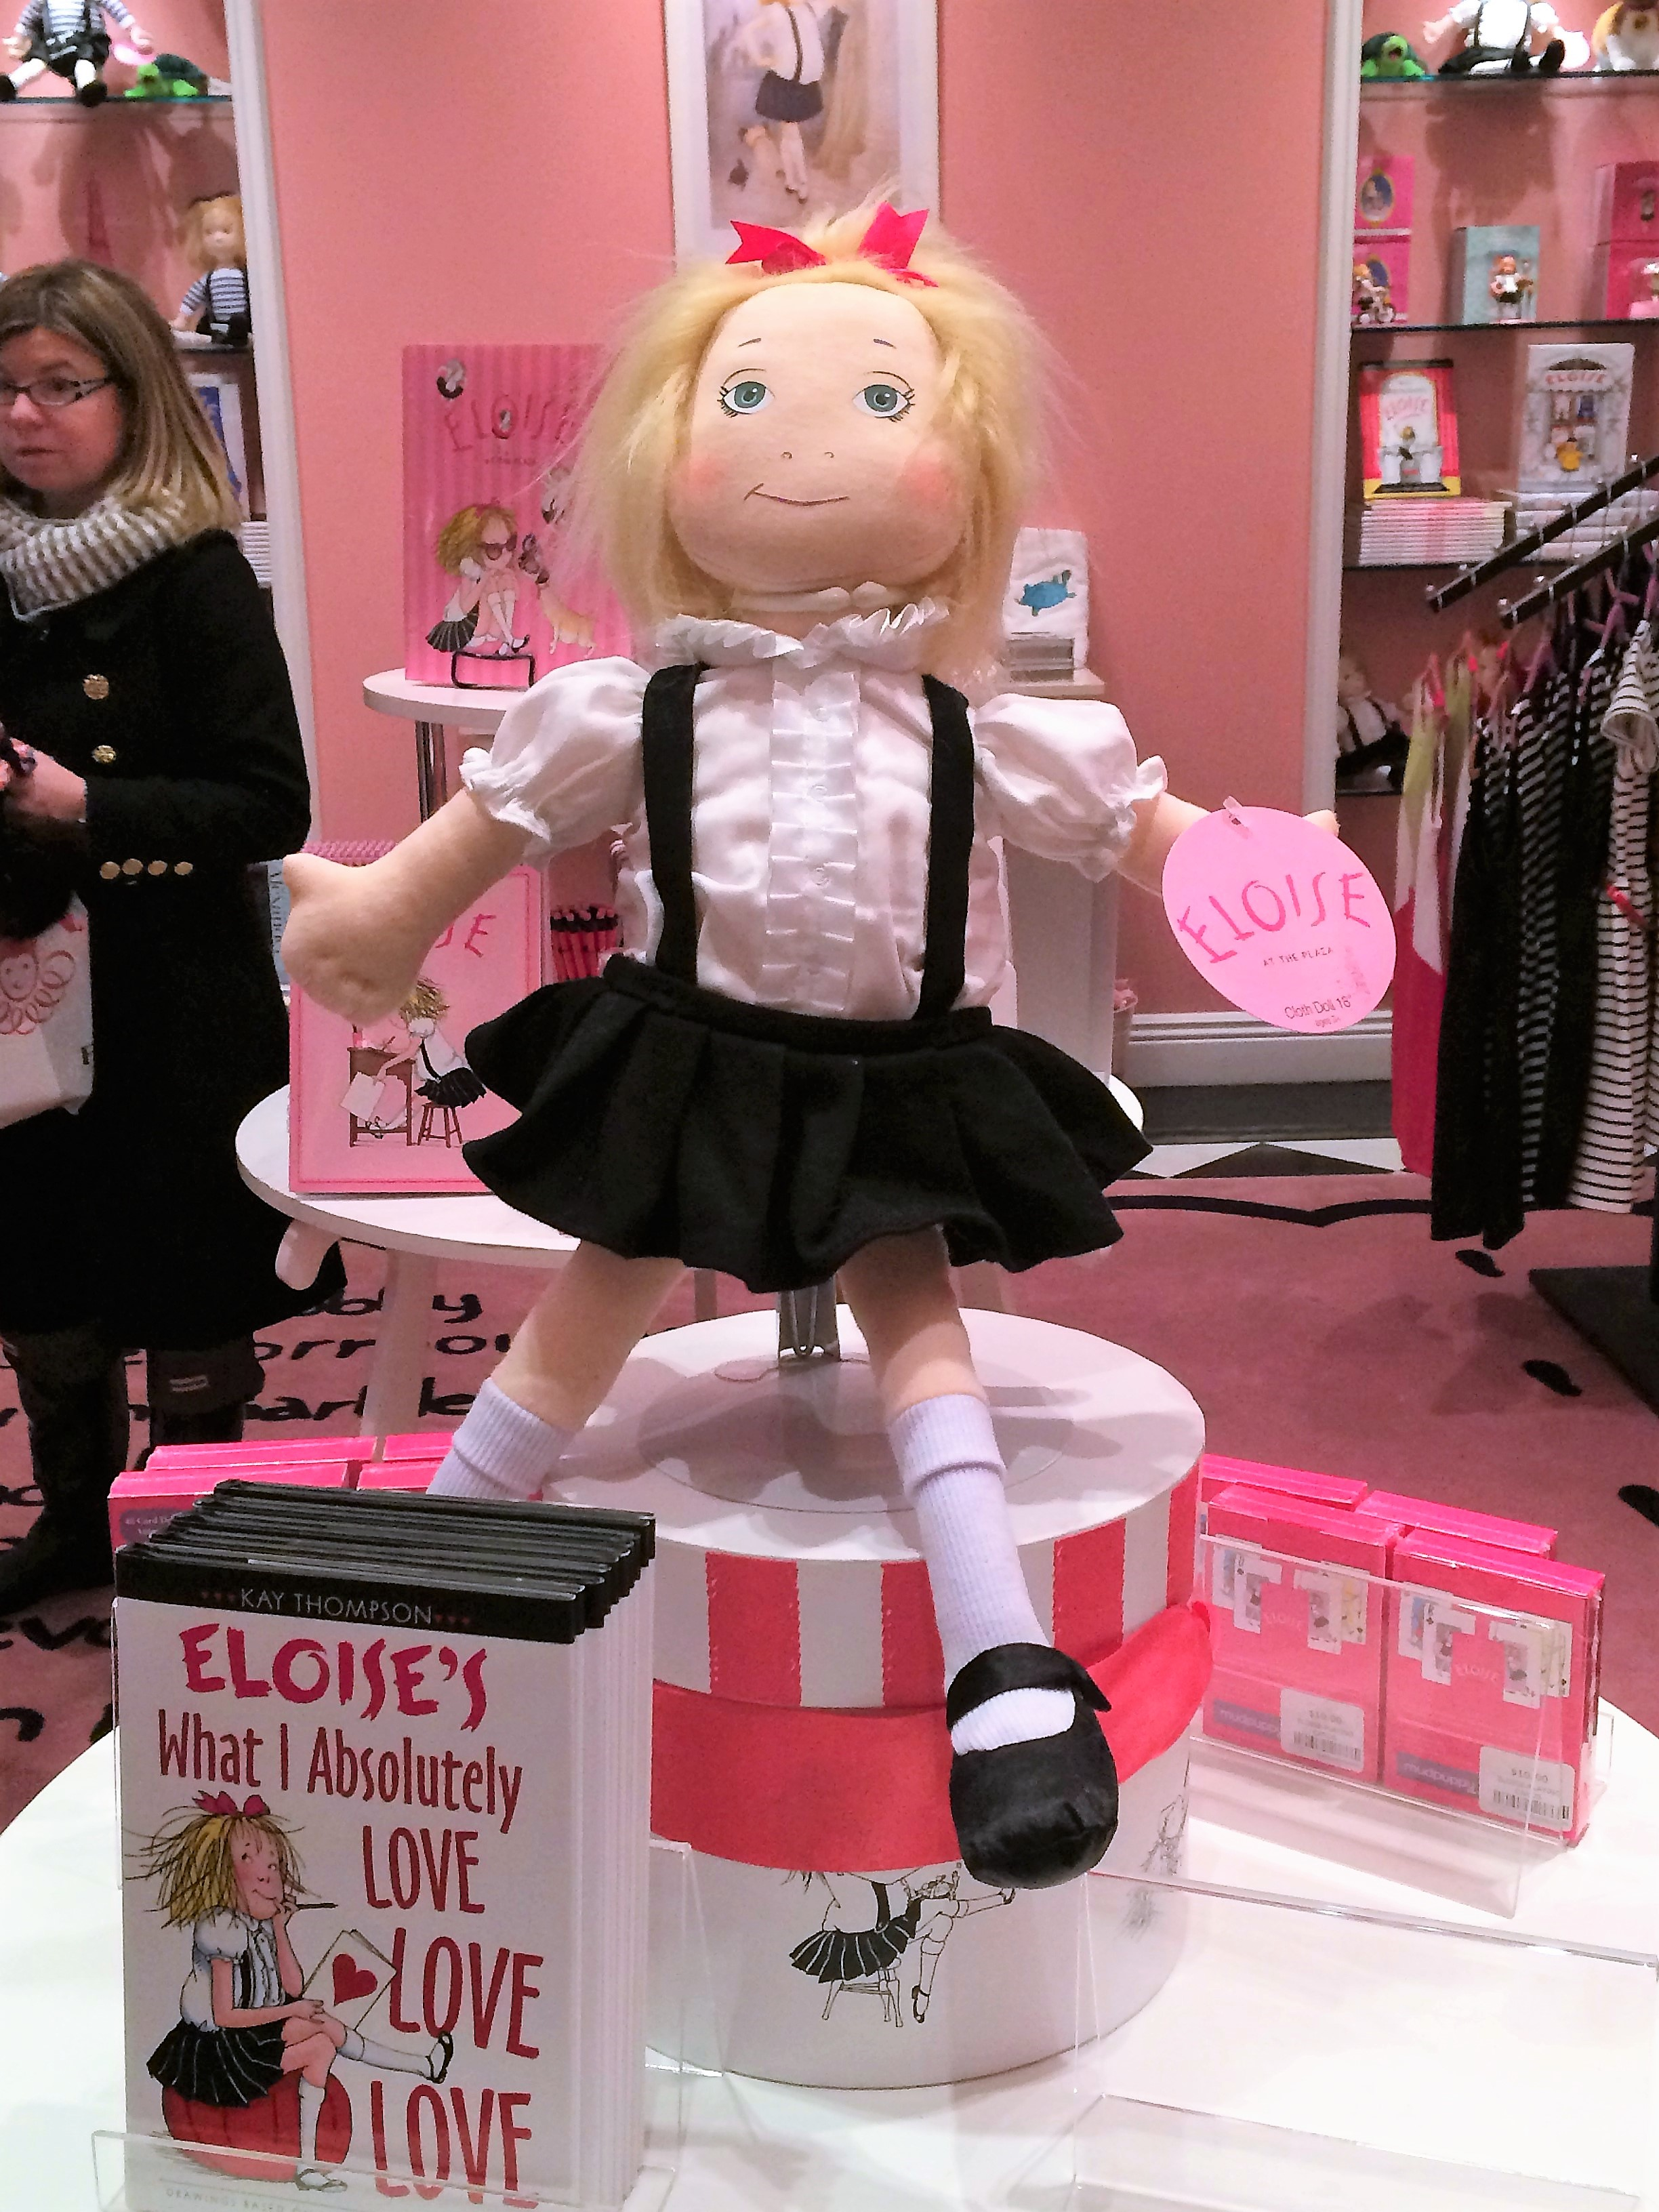 Eloise at the Plaza...